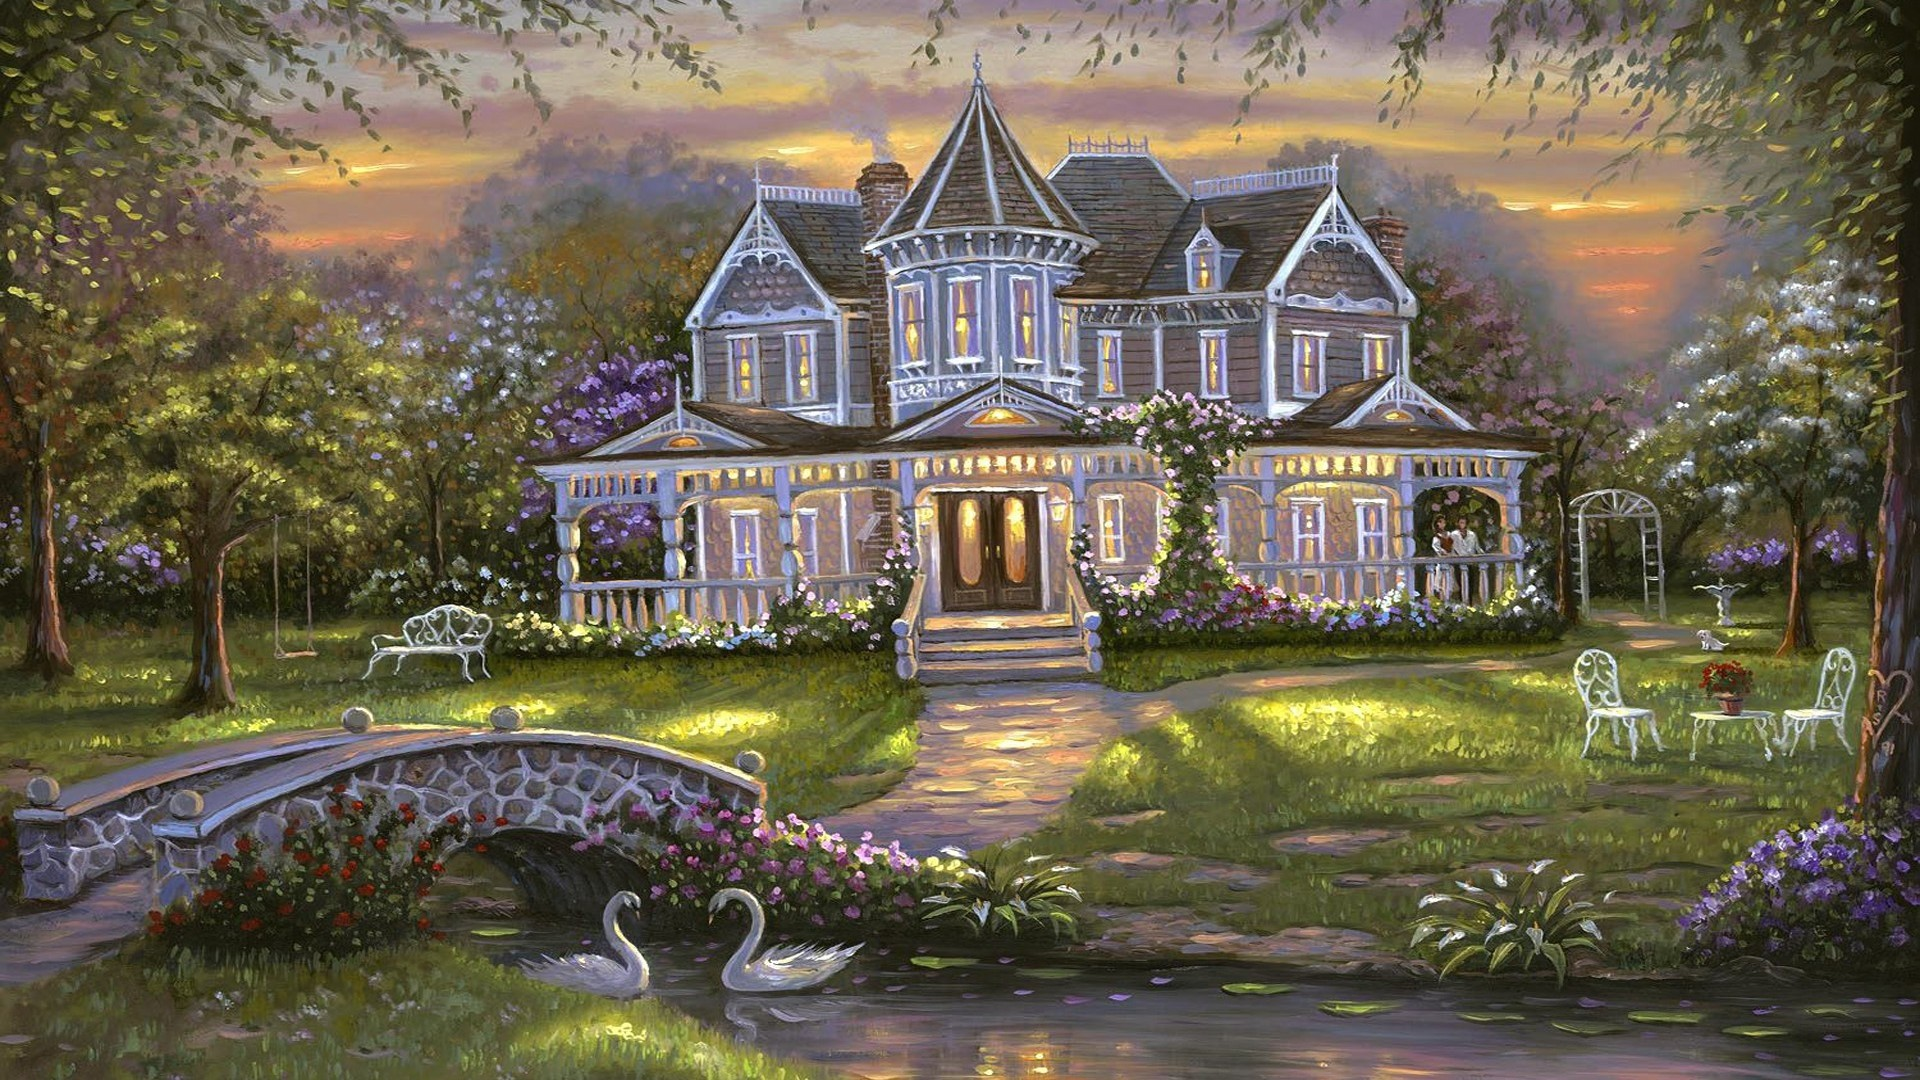 House By The River Art Picture